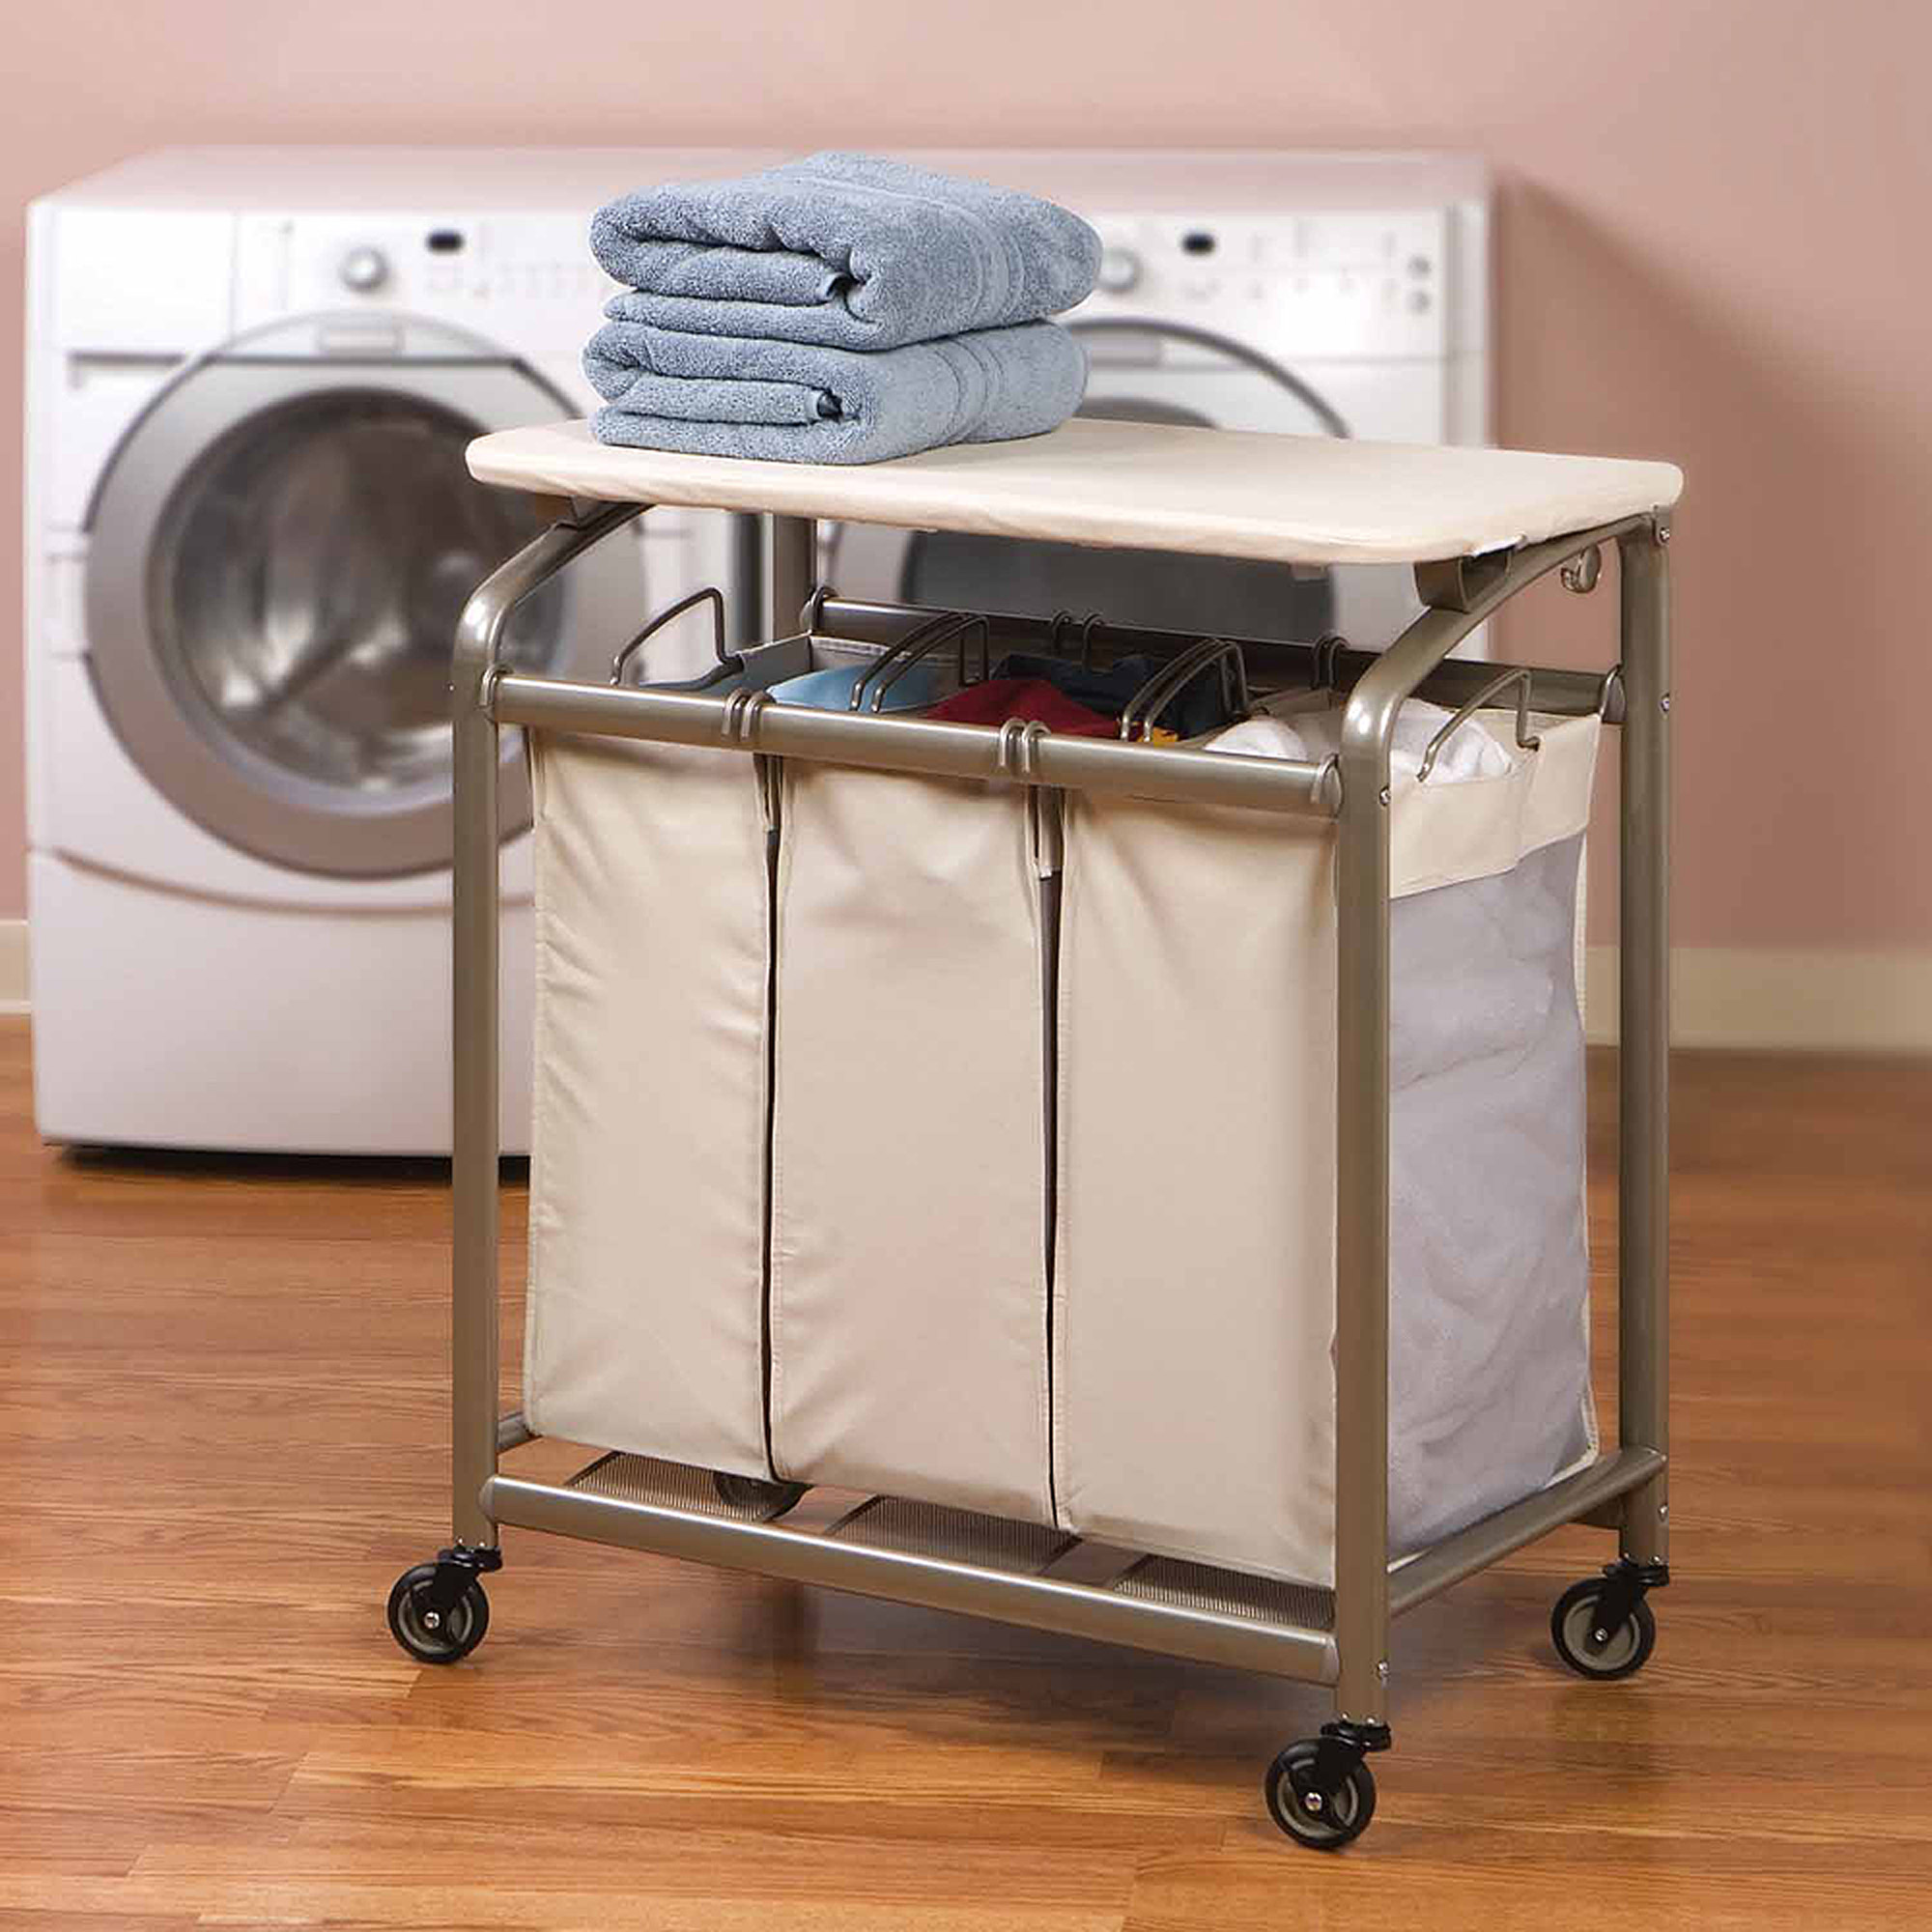 Seville Classics 3 Bag Laundry Hamper Sorter Cart With Folding Table,  Champagne   Walmart.com